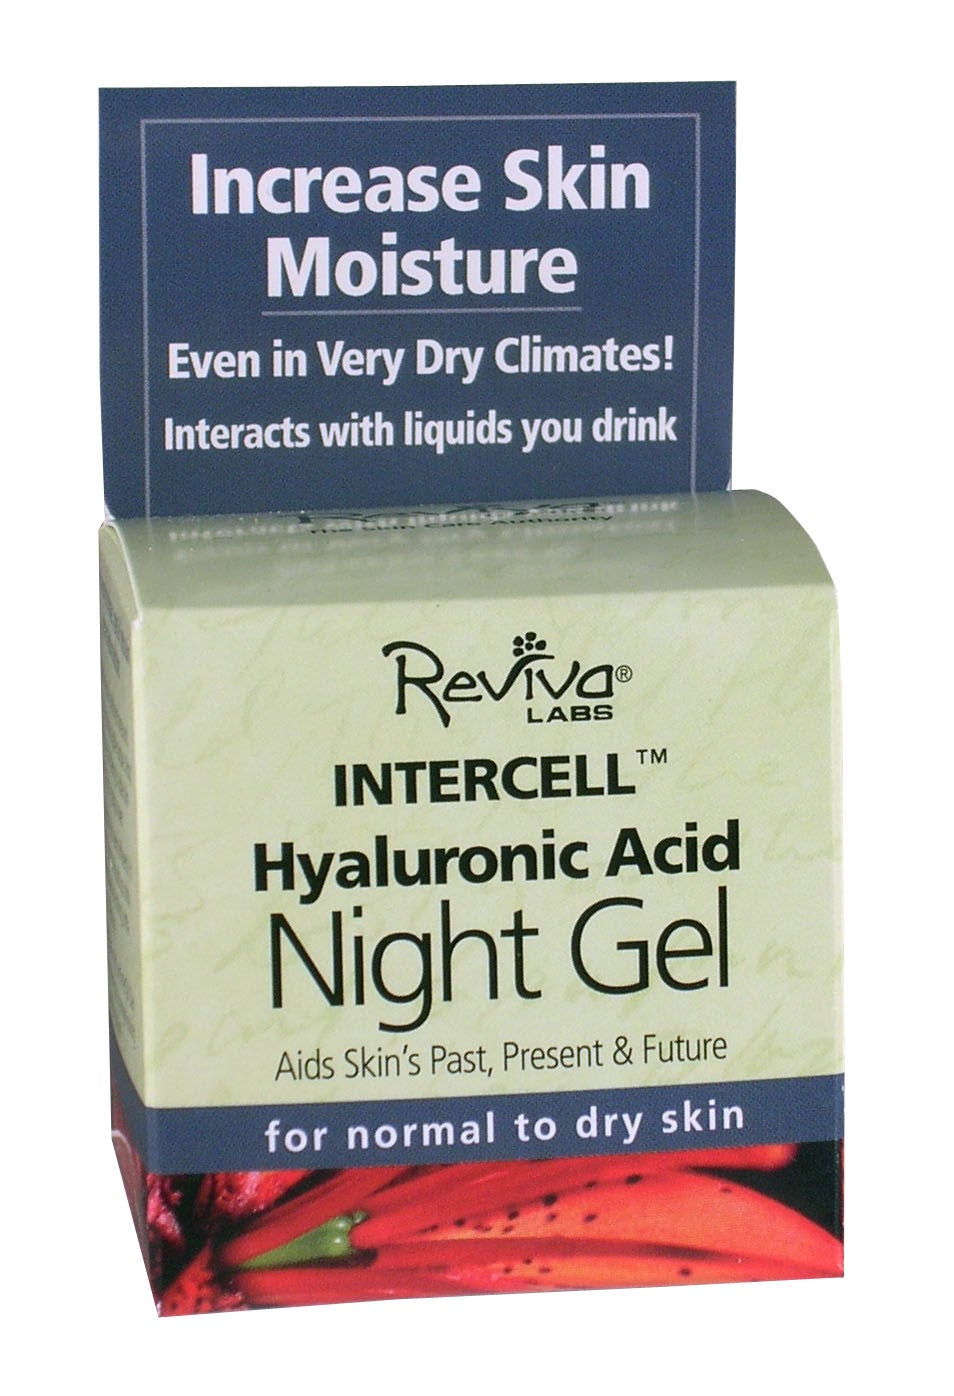 Reviva Labs 0830760 InterCell Night Gel with Hyaluronic Acid - 1.25 oz